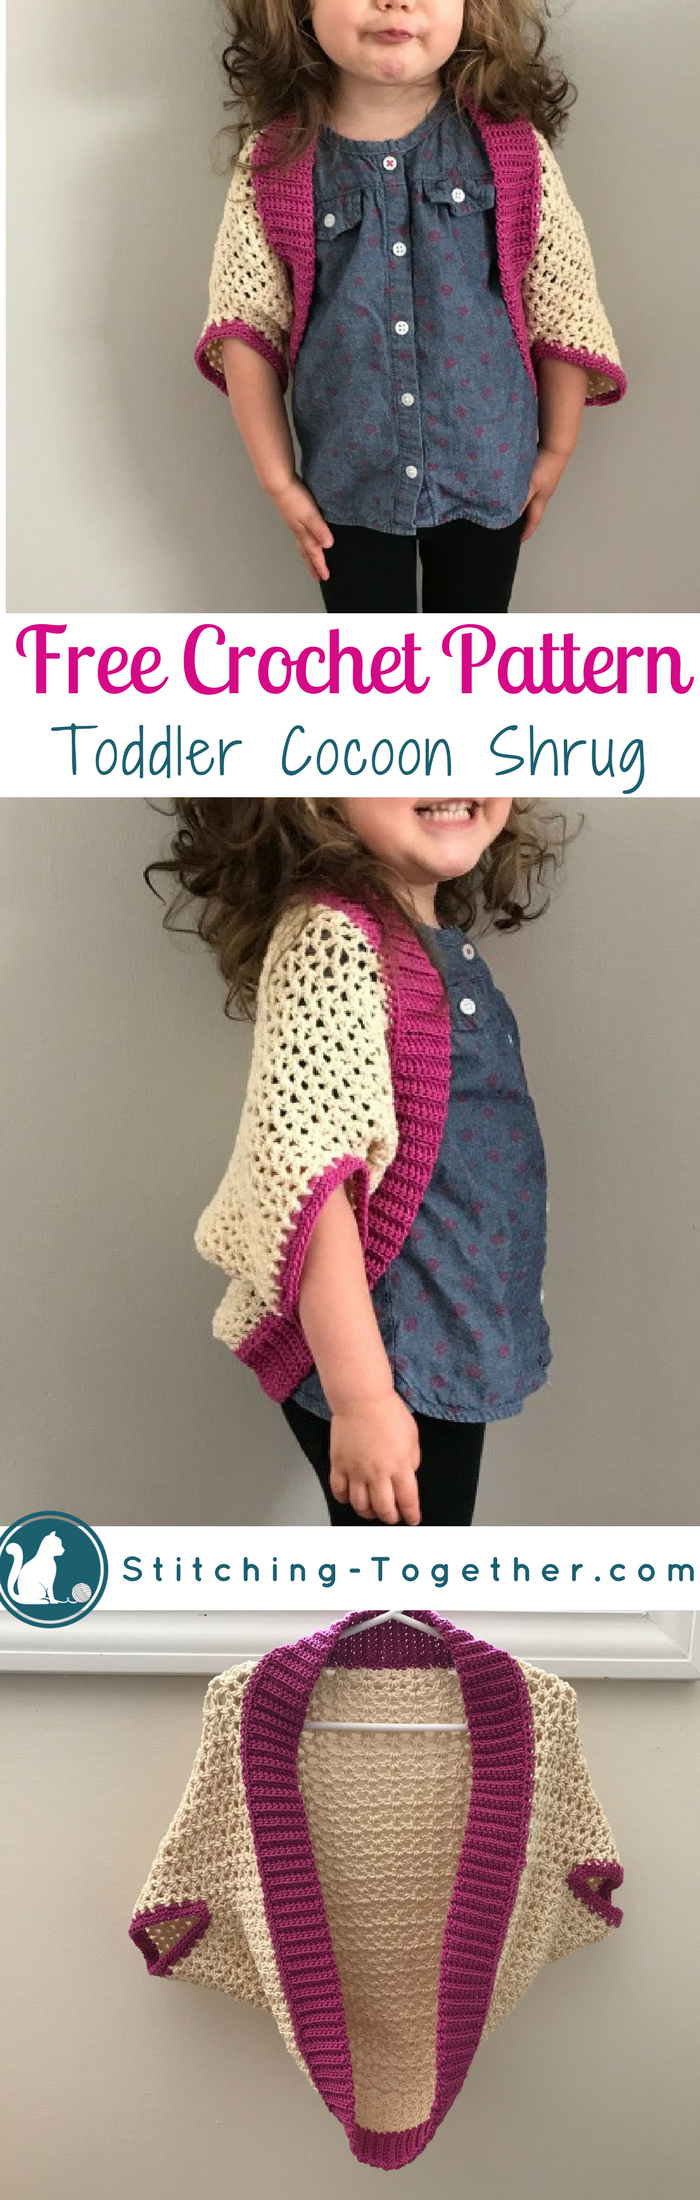 Crochet toddler cocoon shrug crochet blankets free crochet and adorable toddler cocoon shrug click through for the free crochet pattern for this toddler cocoon bankloansurffo Choice Image